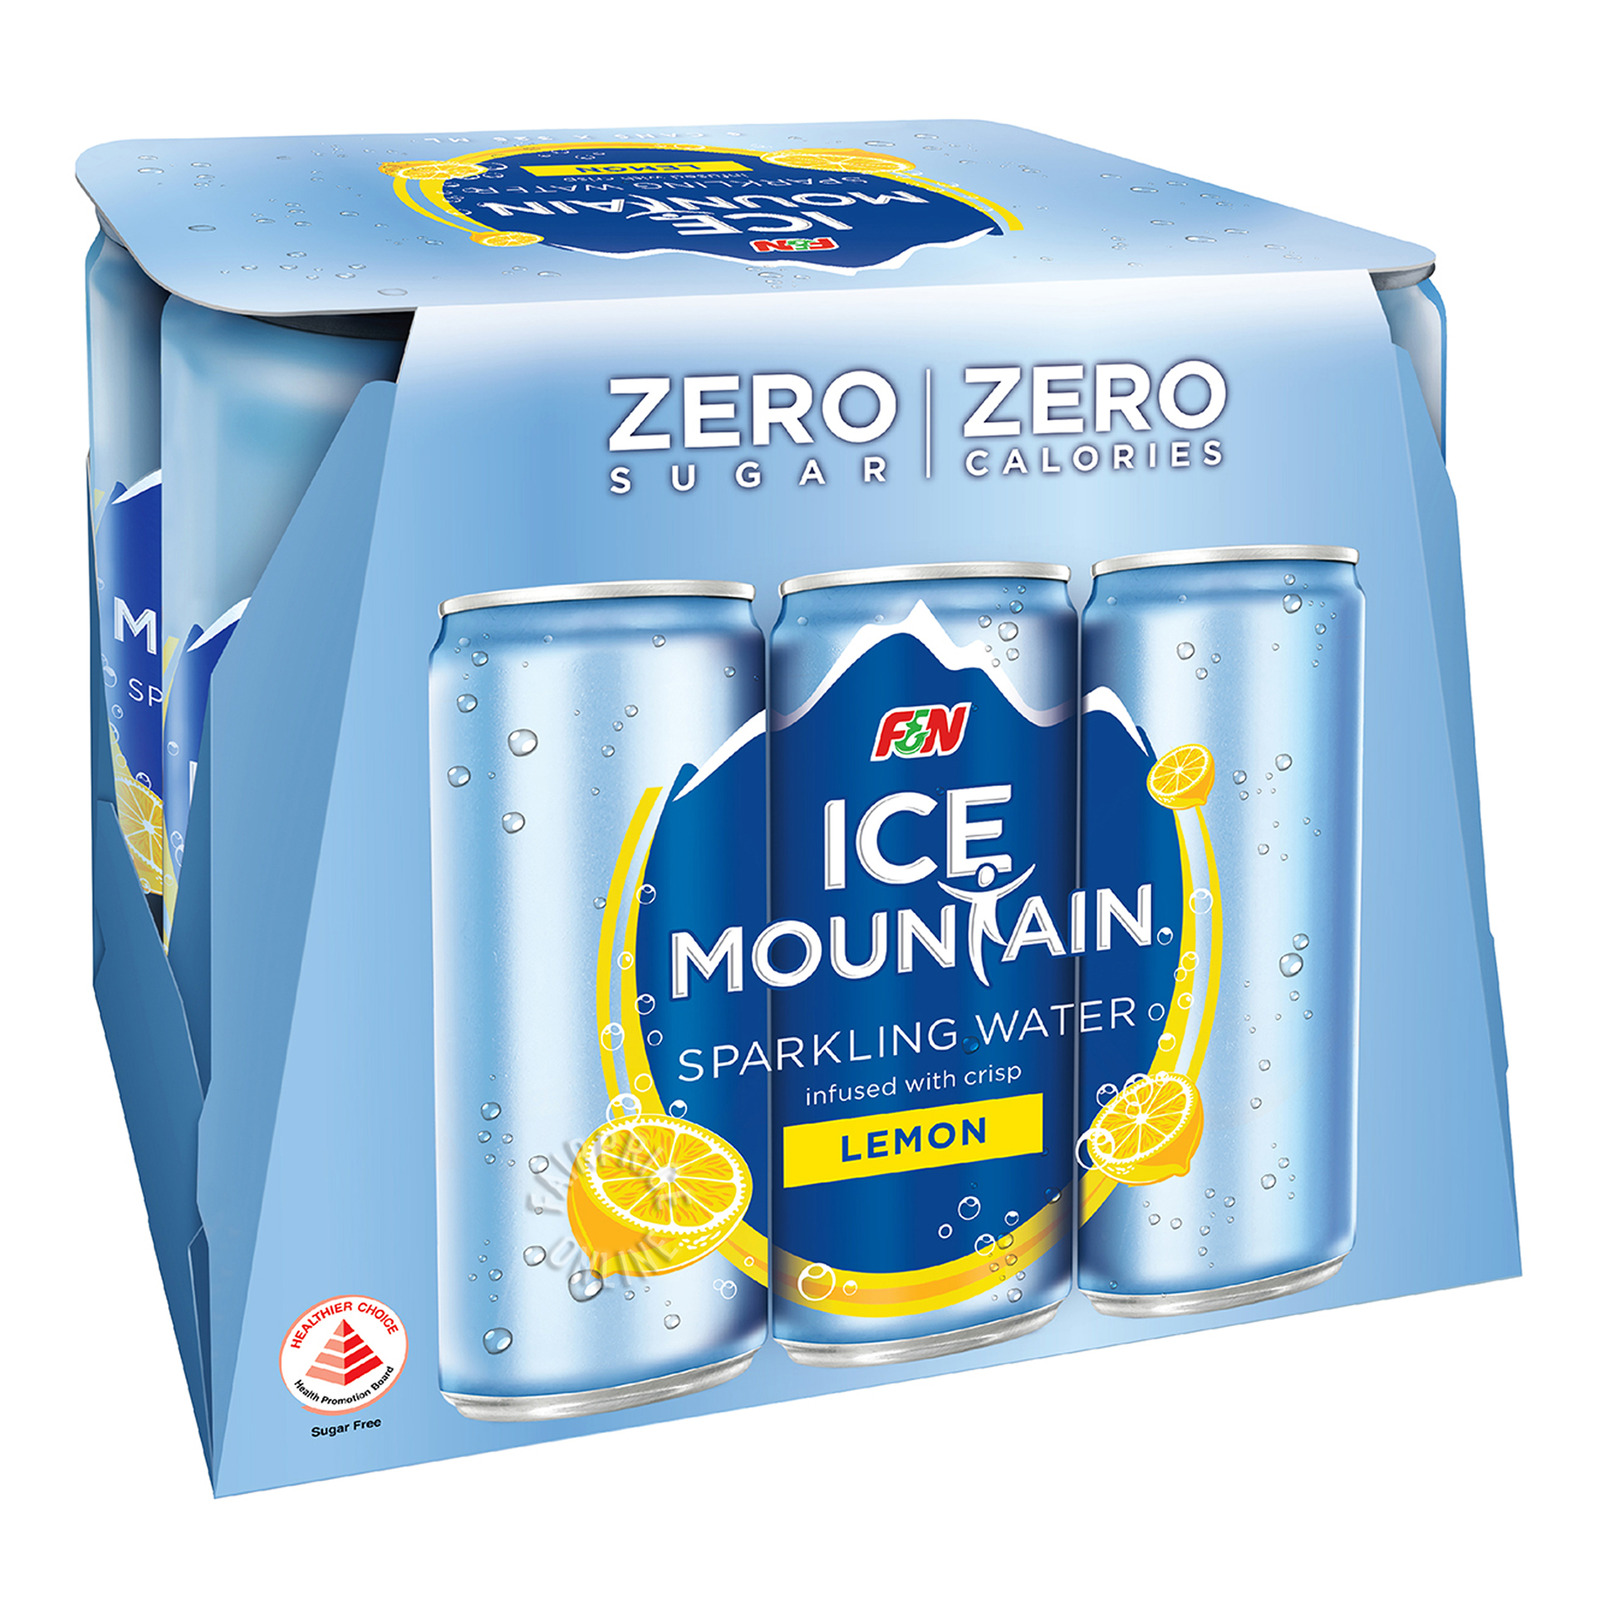 F&N Ice Mountain Sparkling Can Water - Lemon (No Sugar)